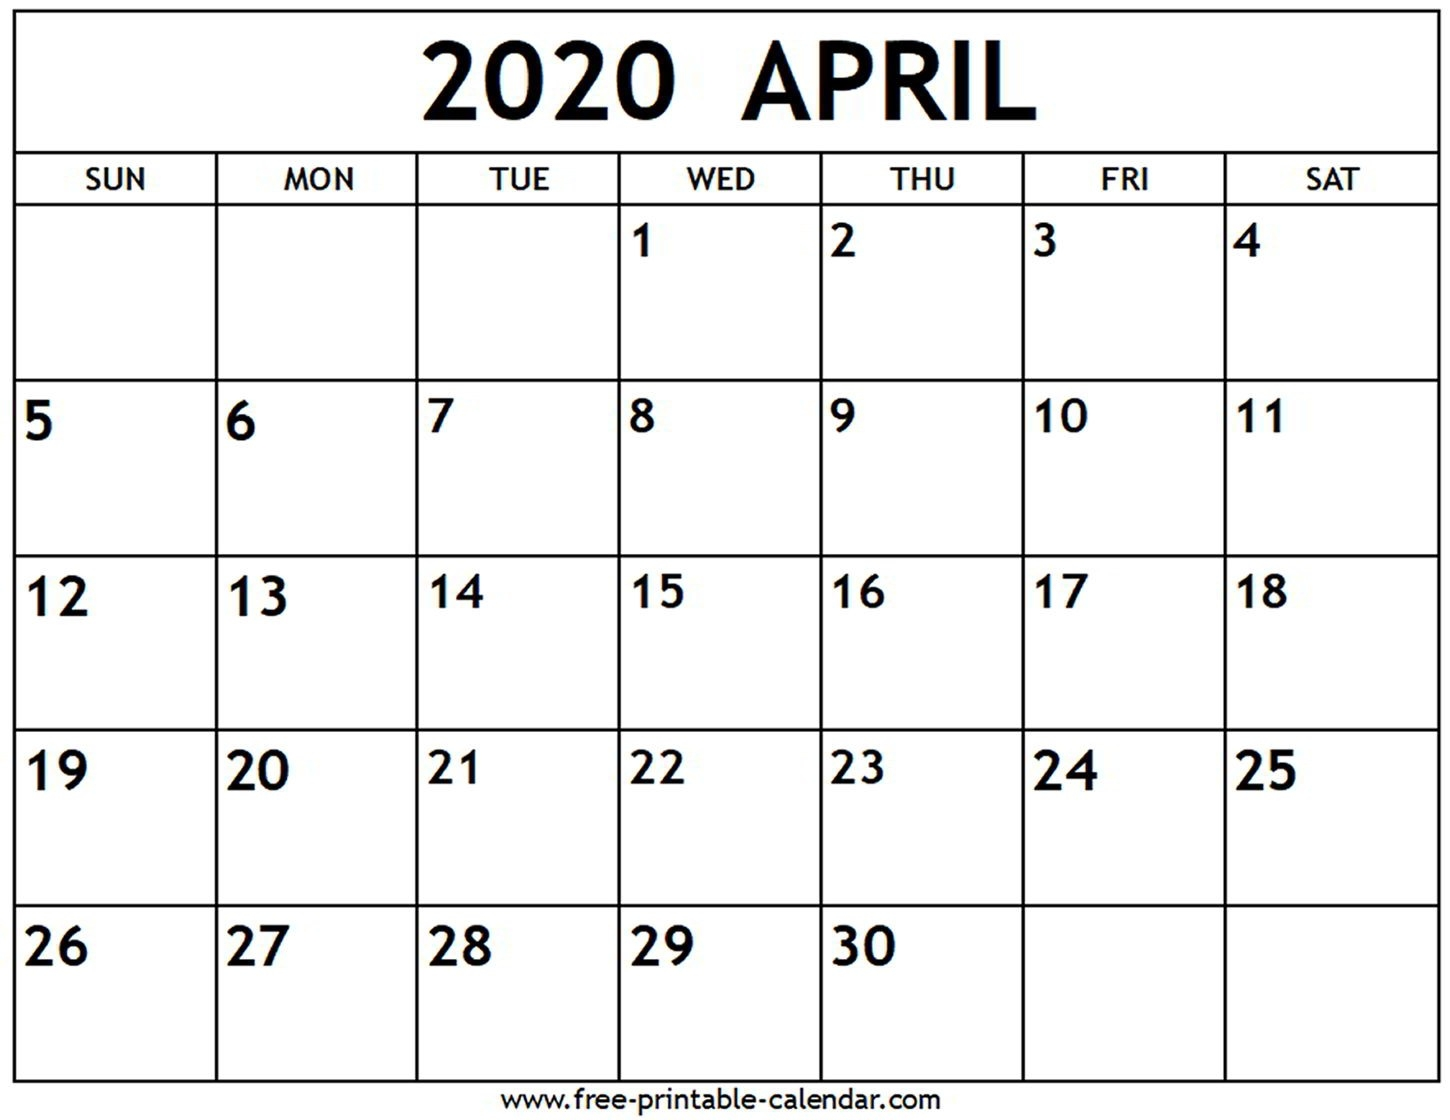 April 2020 Calendar - Free-Printable-Calendar-Printable Monthly Calendar Templates Uk